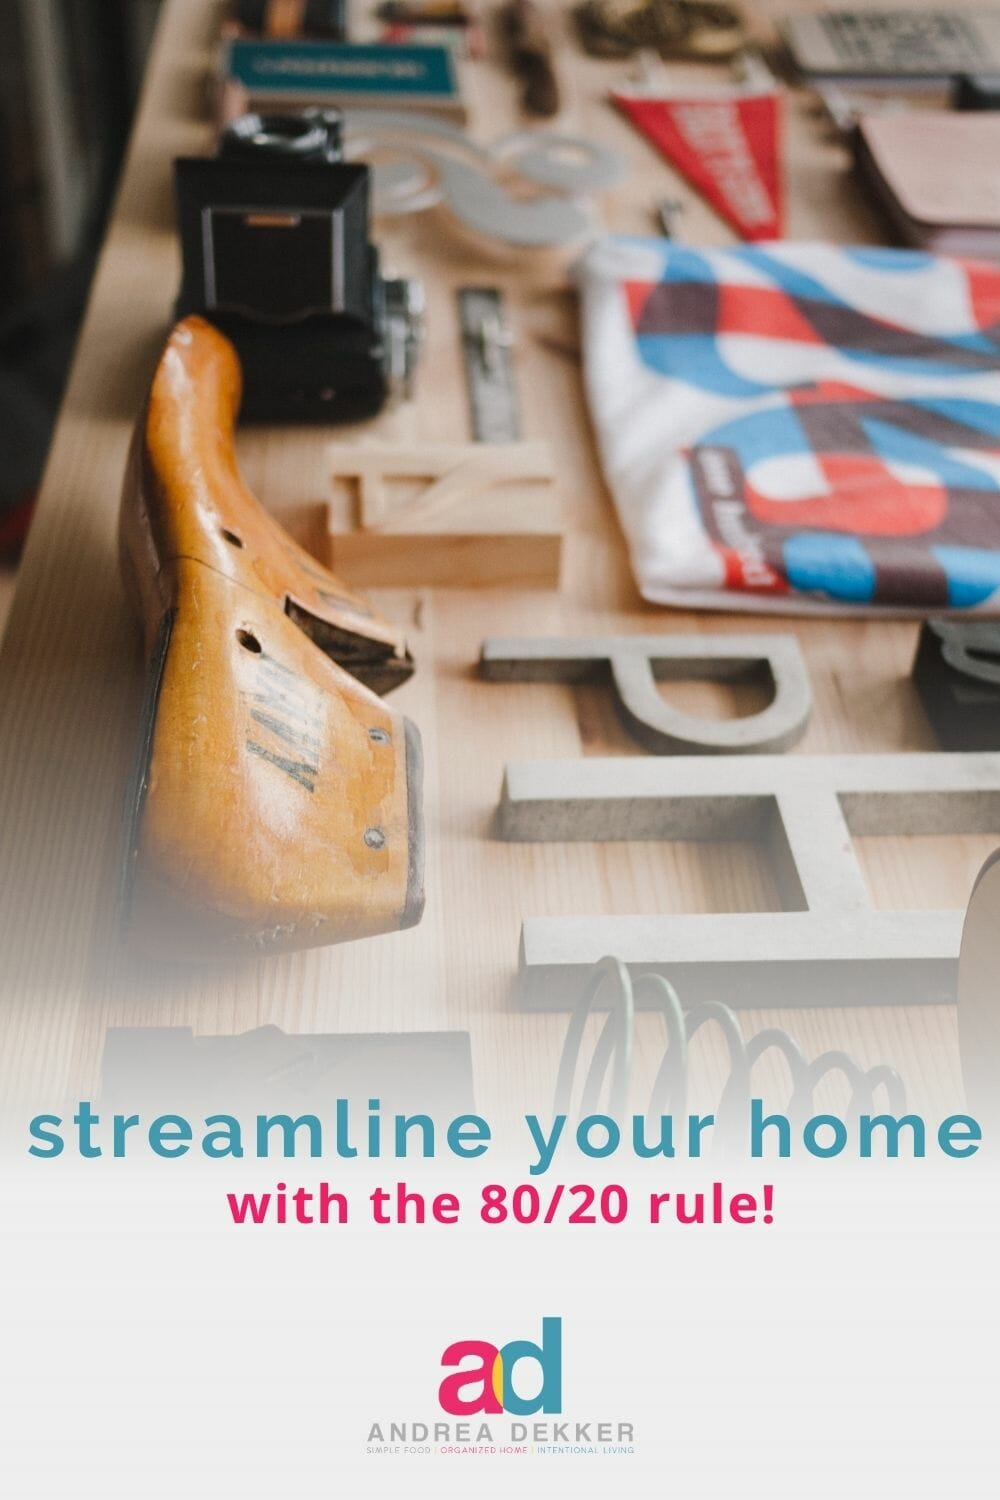 If you're looking for a simple mindset shift that could totally transform the way you view your stuff… and streamline your home and life in the process, let me introduce you to the 80/20 rule! via @andreadekker